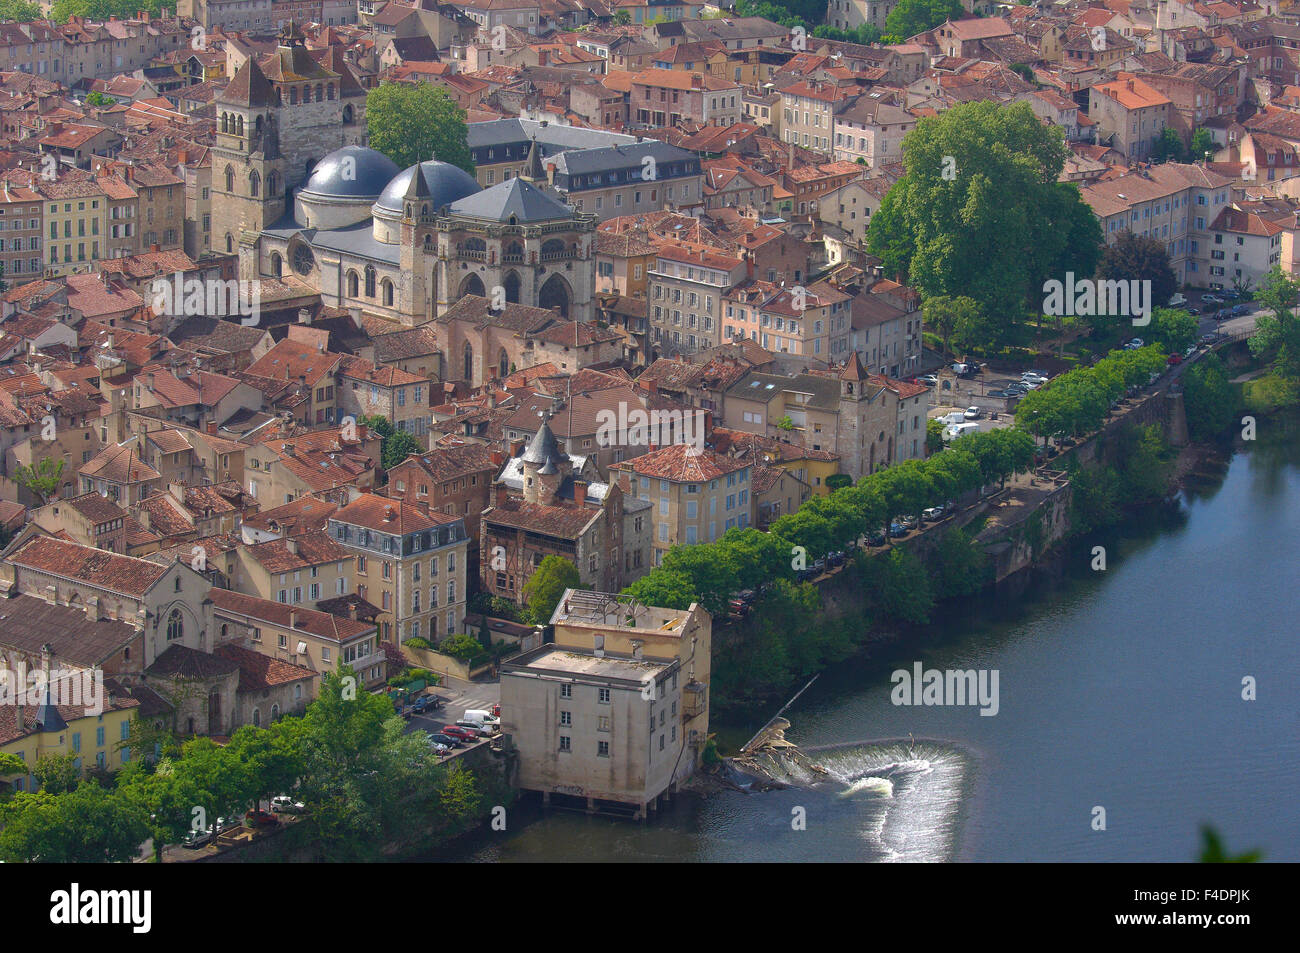 Cahors, Lot River, Lot departament, Quercy, Via Podiensis, Way of St James, France. - Stock Image